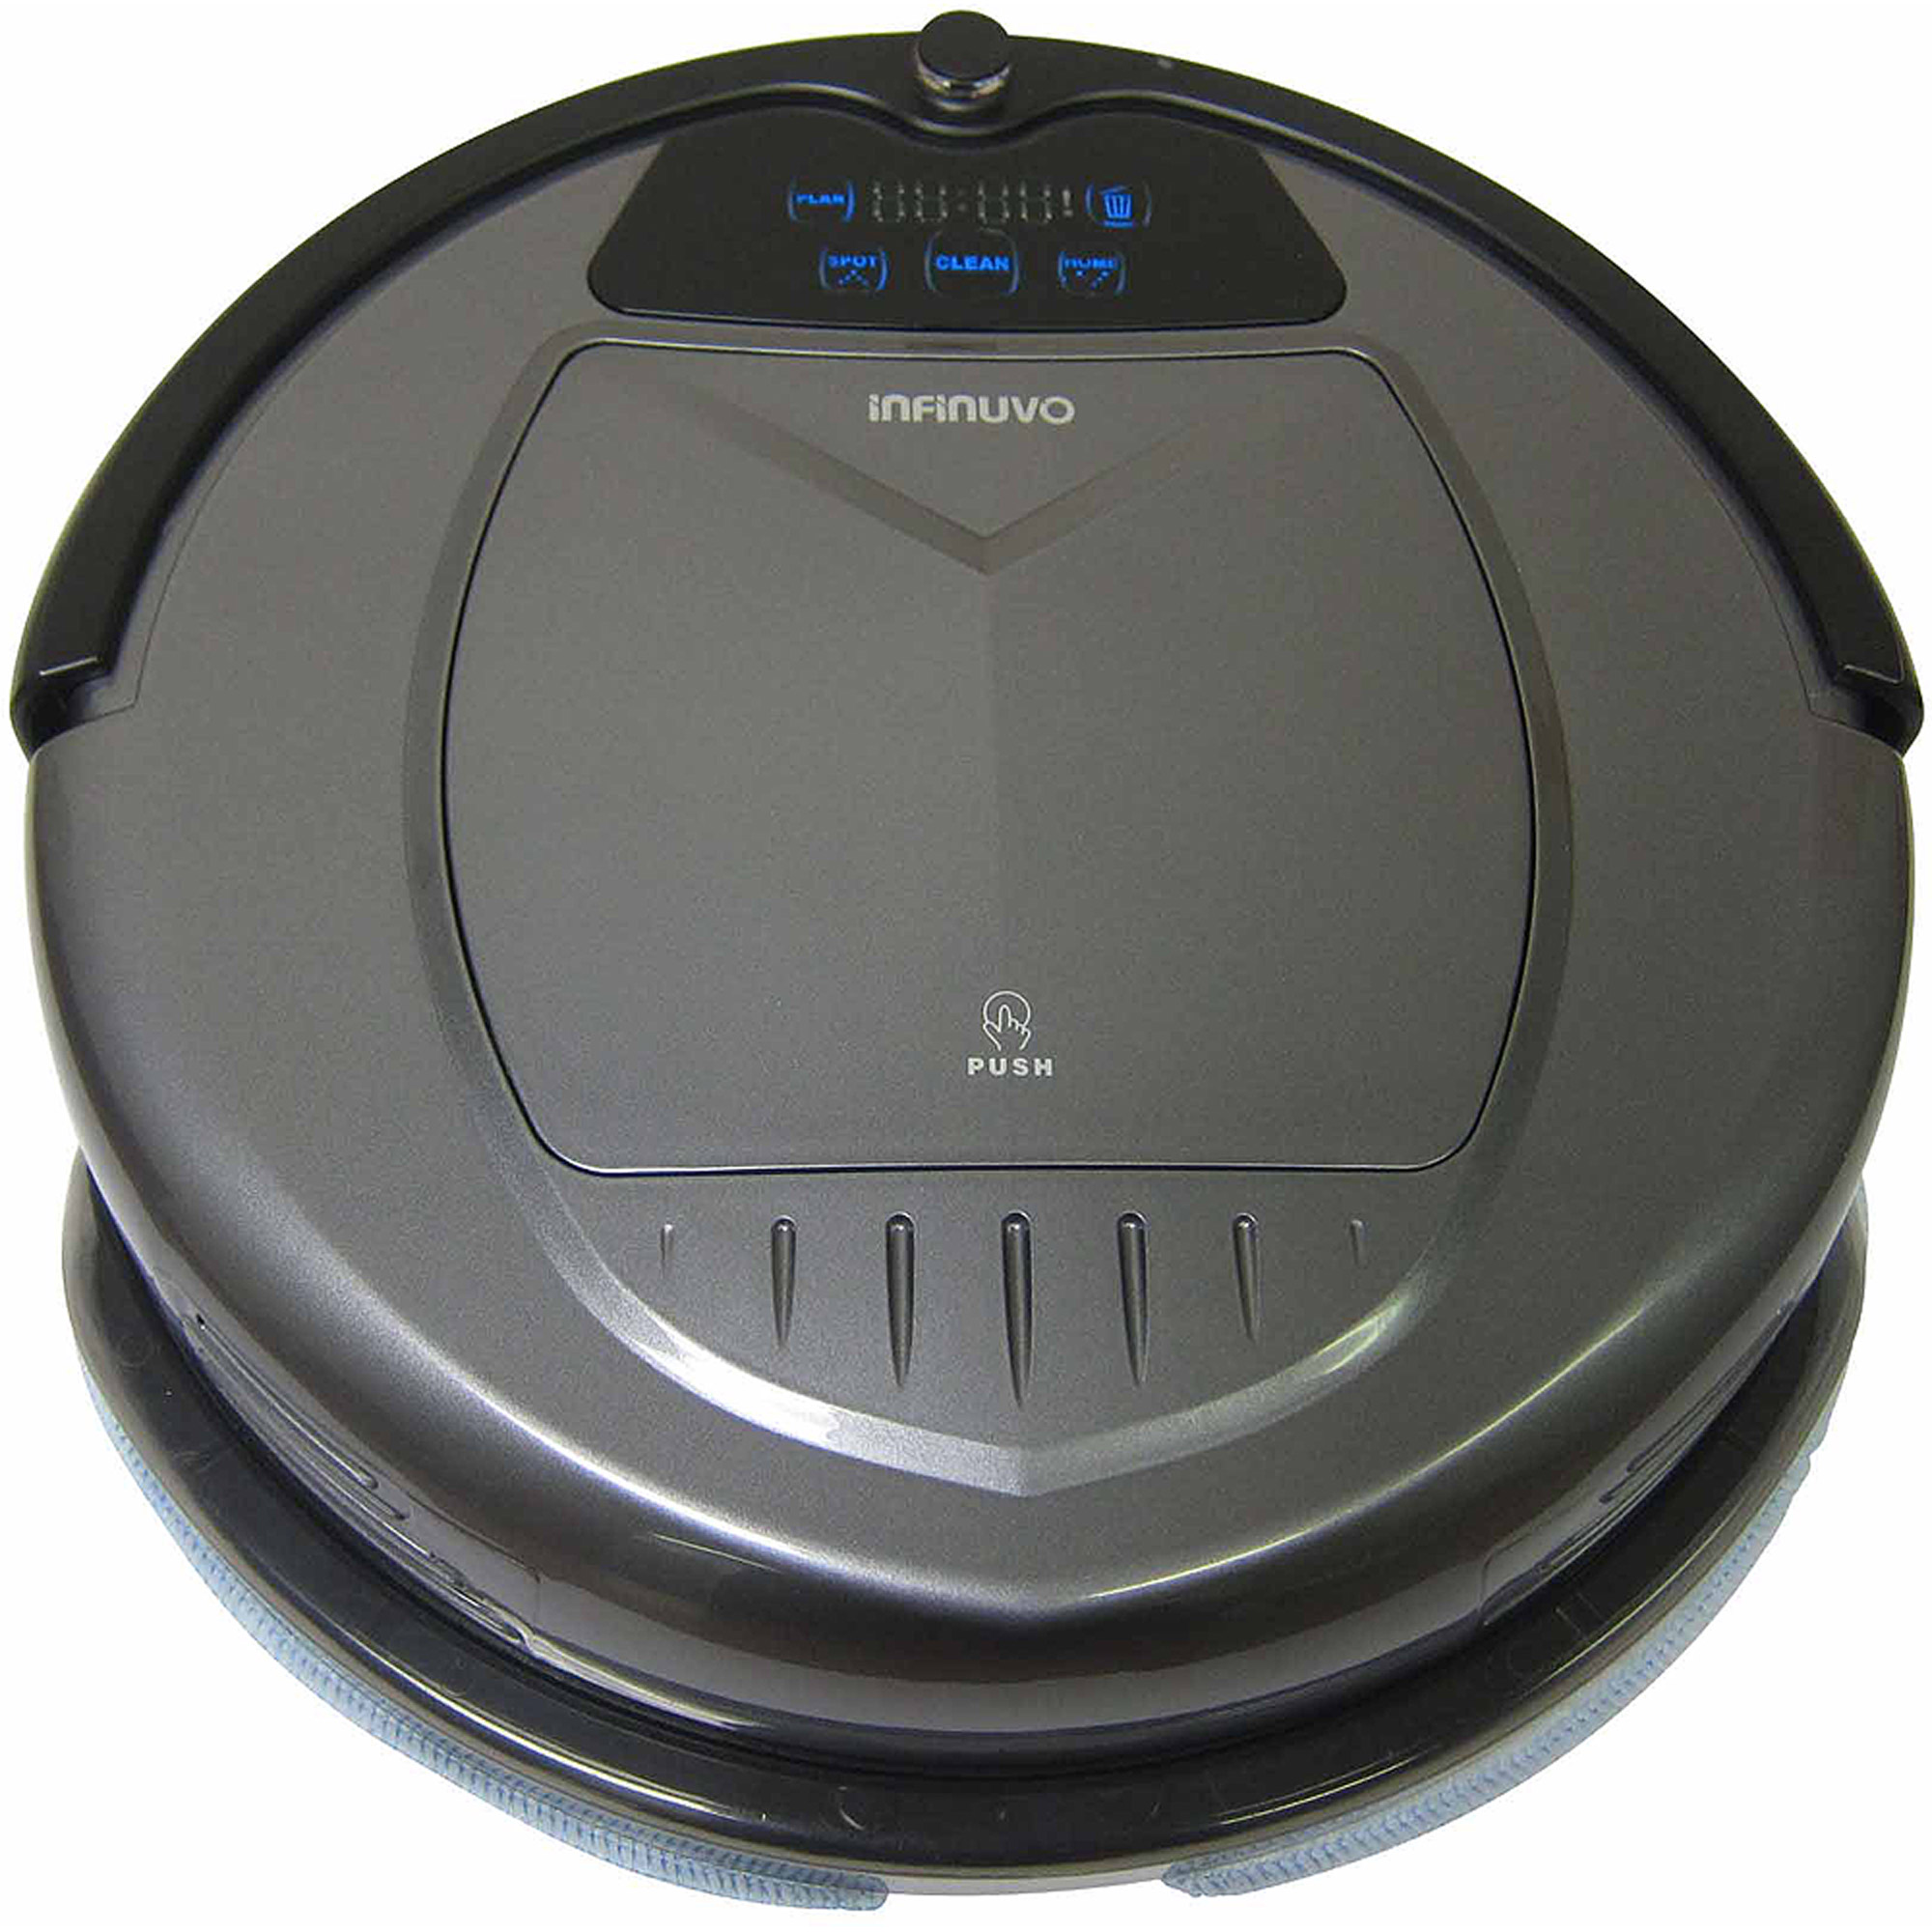 Metapo Infinuvo Hovo 650 Robotic Vacuum Cleaner Water Tank, Grey